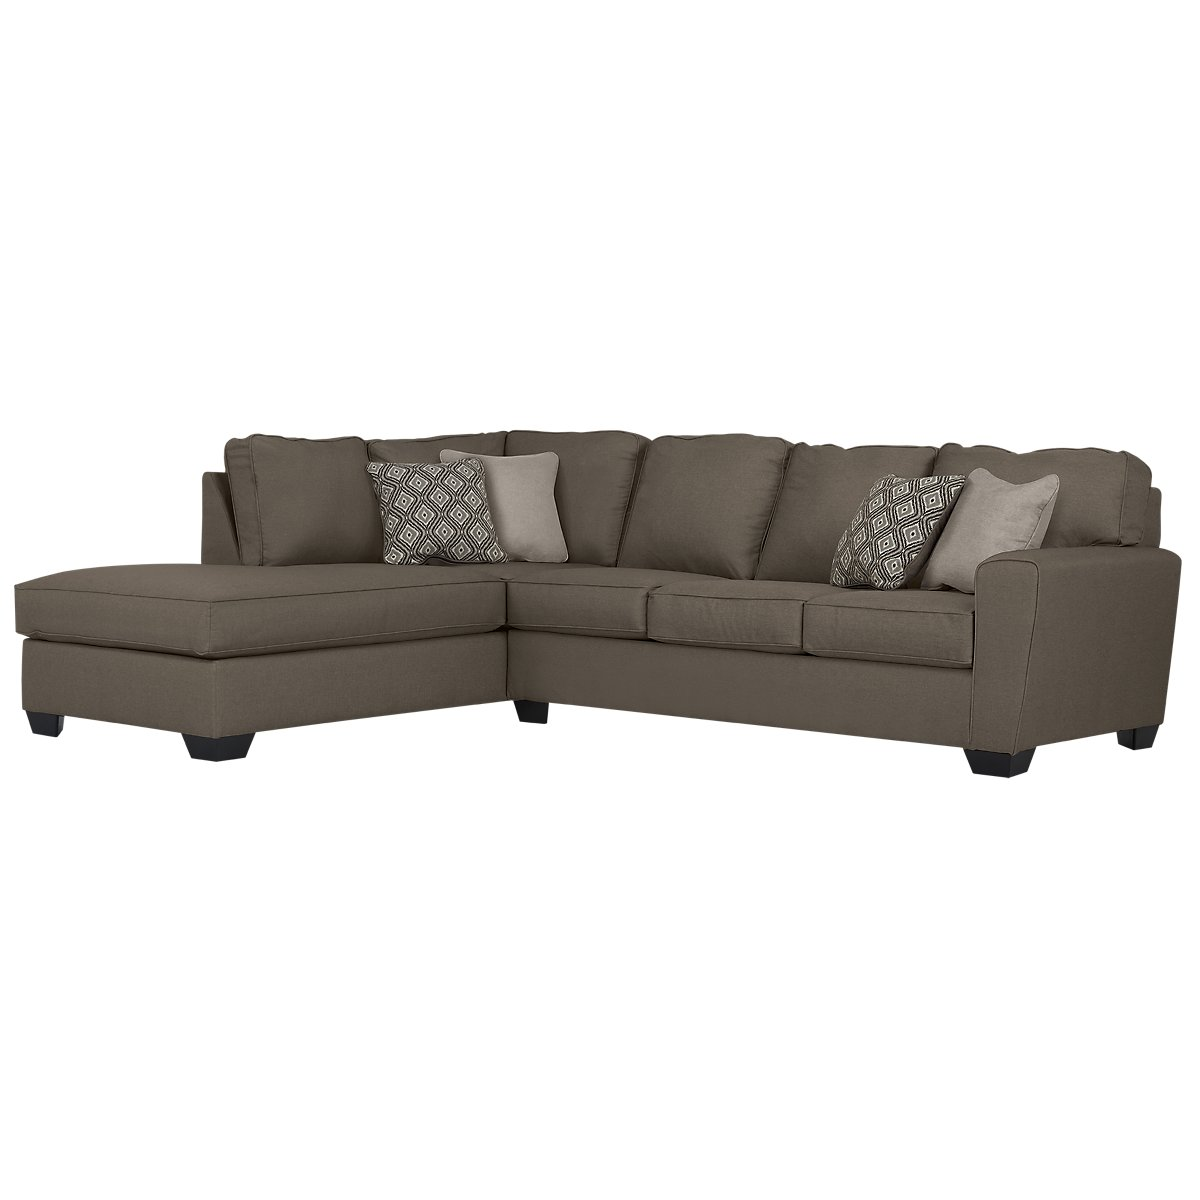 calicho dark taupe microfiber left chaise sectional. Black Bedroom Furniture Sets. Home Design Ideas